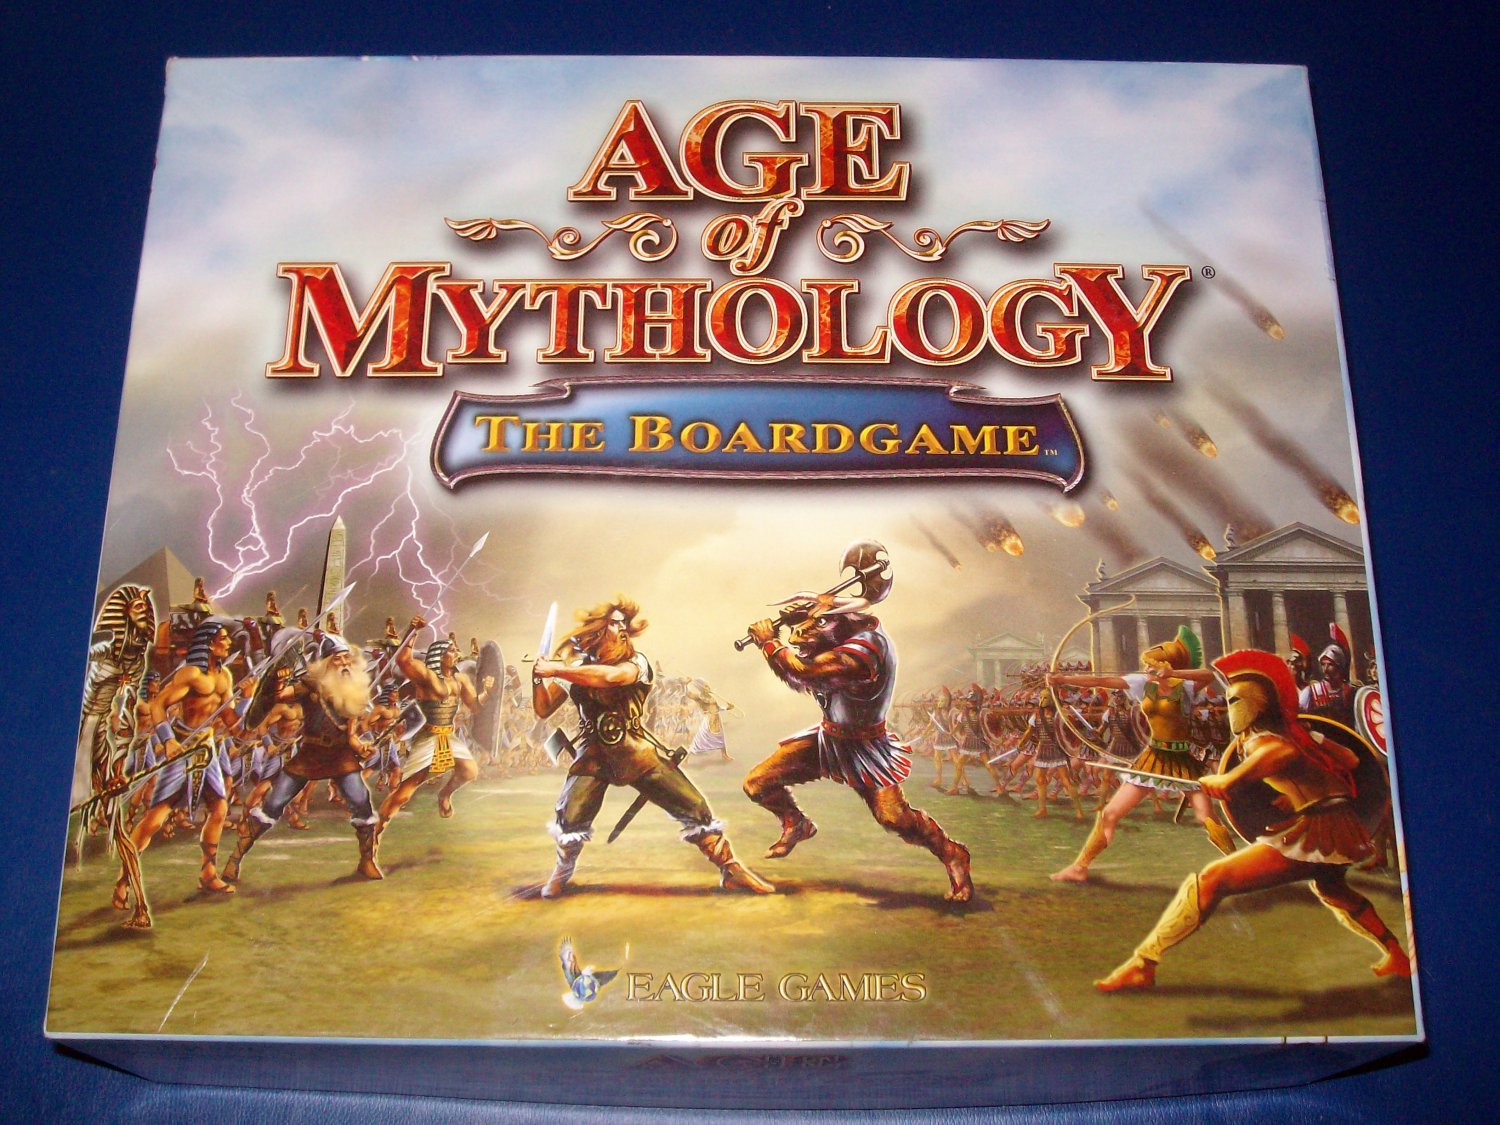 2003 AGE OF MYTHOLOGY - THE BOARD GAME - MICROSOFT -- NORSE, GREEK, ROMAN - EXCELLENT CIB